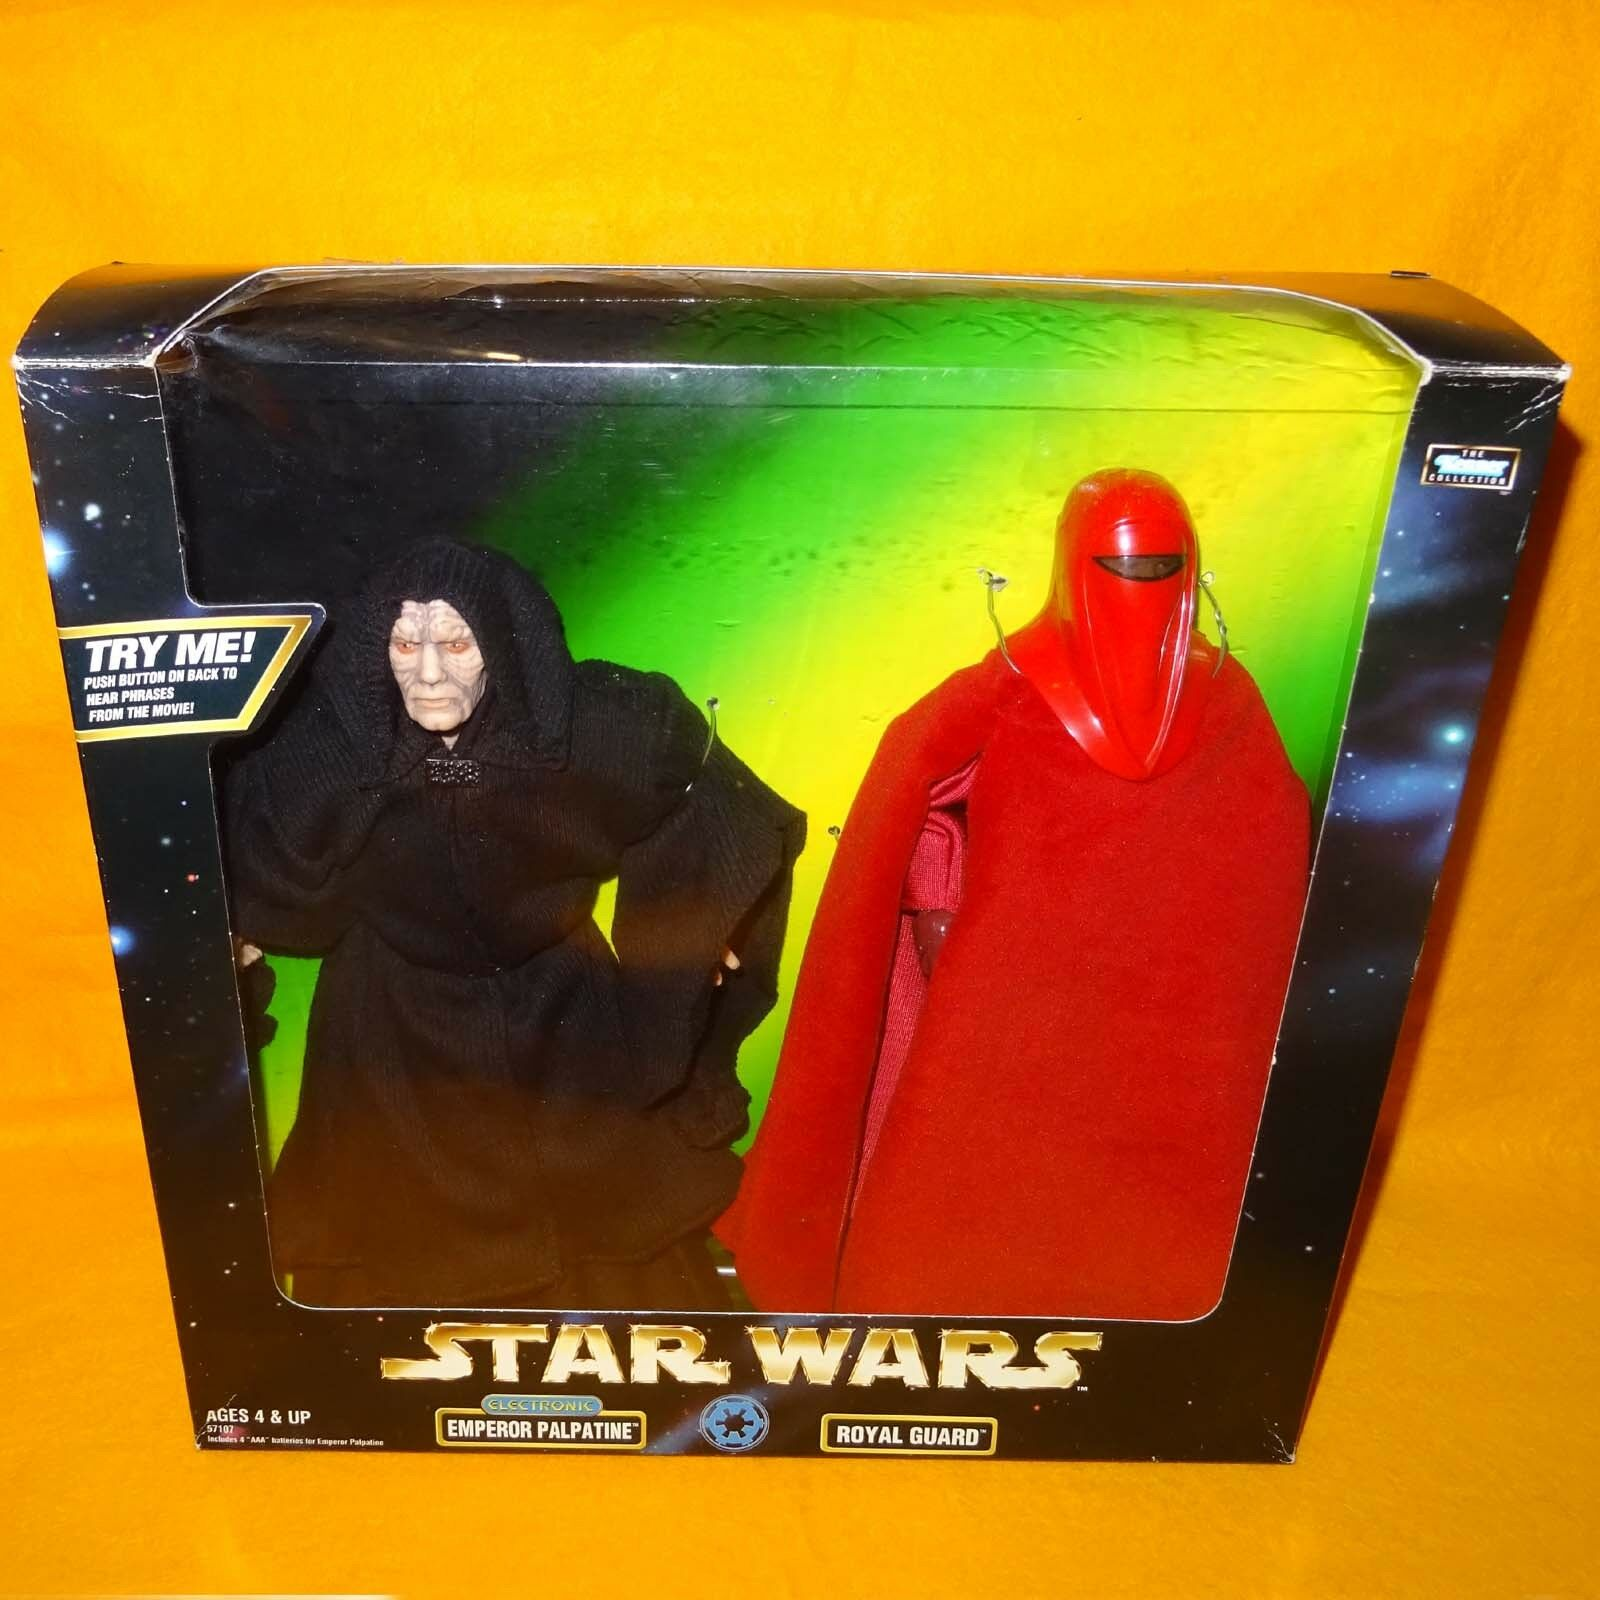 1998 HASBRO STAR WARS THE KENNER COLLECTION EMPEROR PALPATINE ROYAL GUARD BOXED